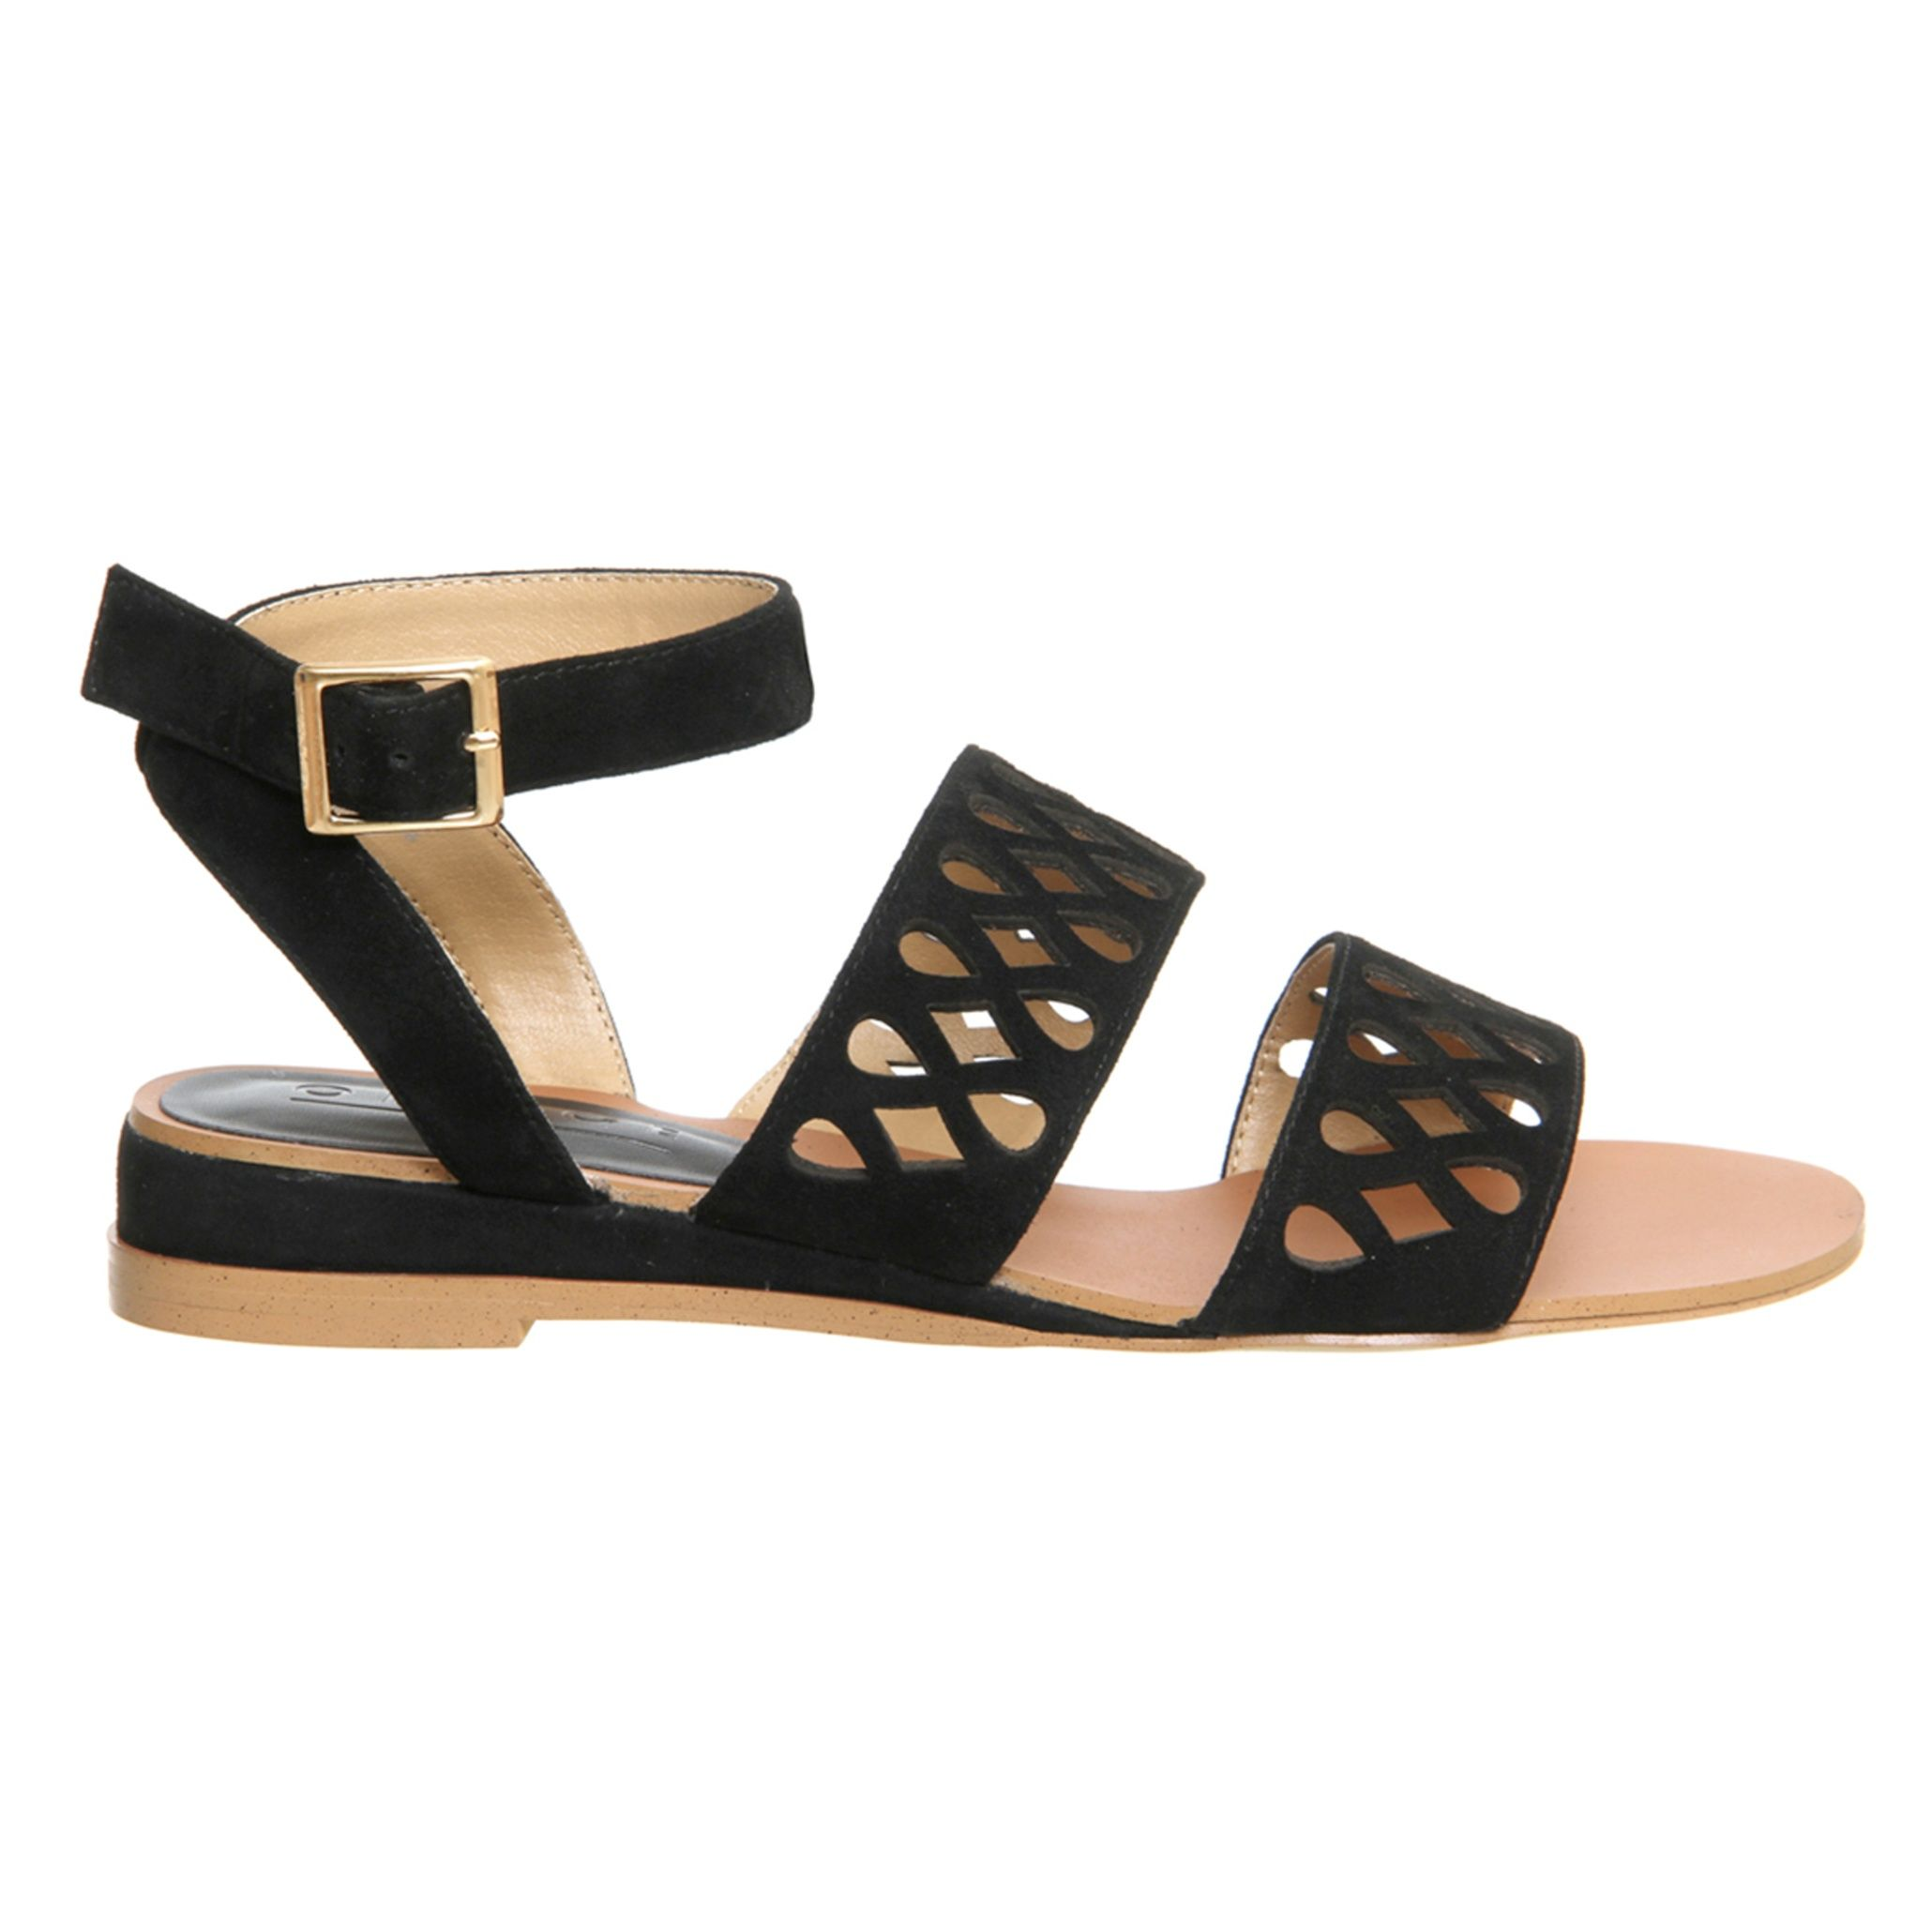 #fashion & #art in a #shoe I Love these #sandals @OfficeShoes Let the #summer begin! 50 of the best sandals – in pictures and they're cheaper than I expected.